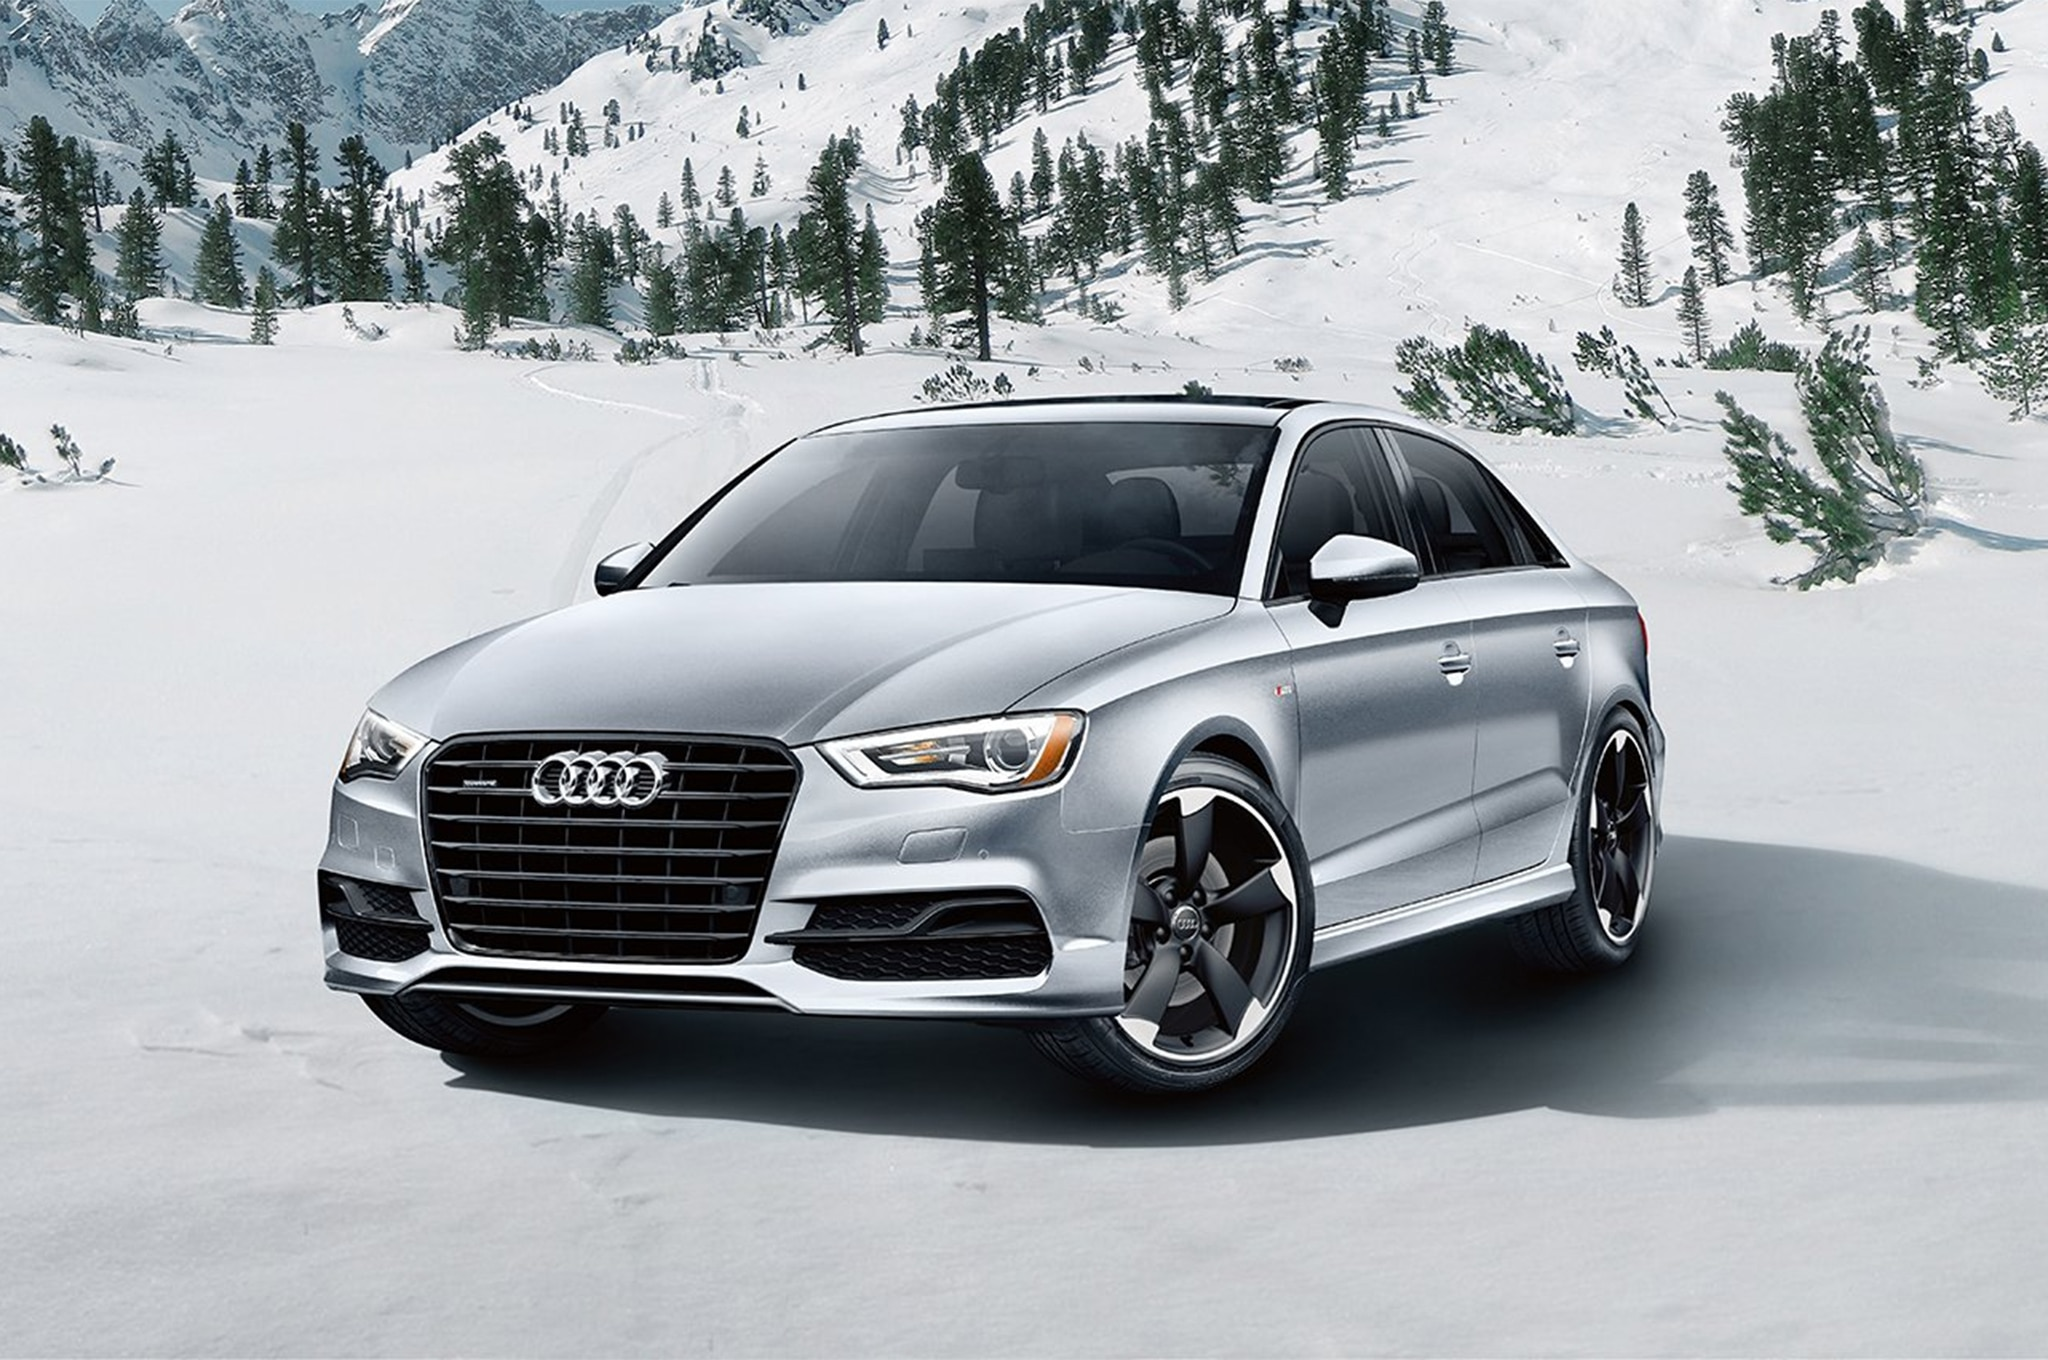 2016 audi a3 a4 add special edition models to boost year end sales. Black Bedroom Furniture Sets. Home Design Ideas